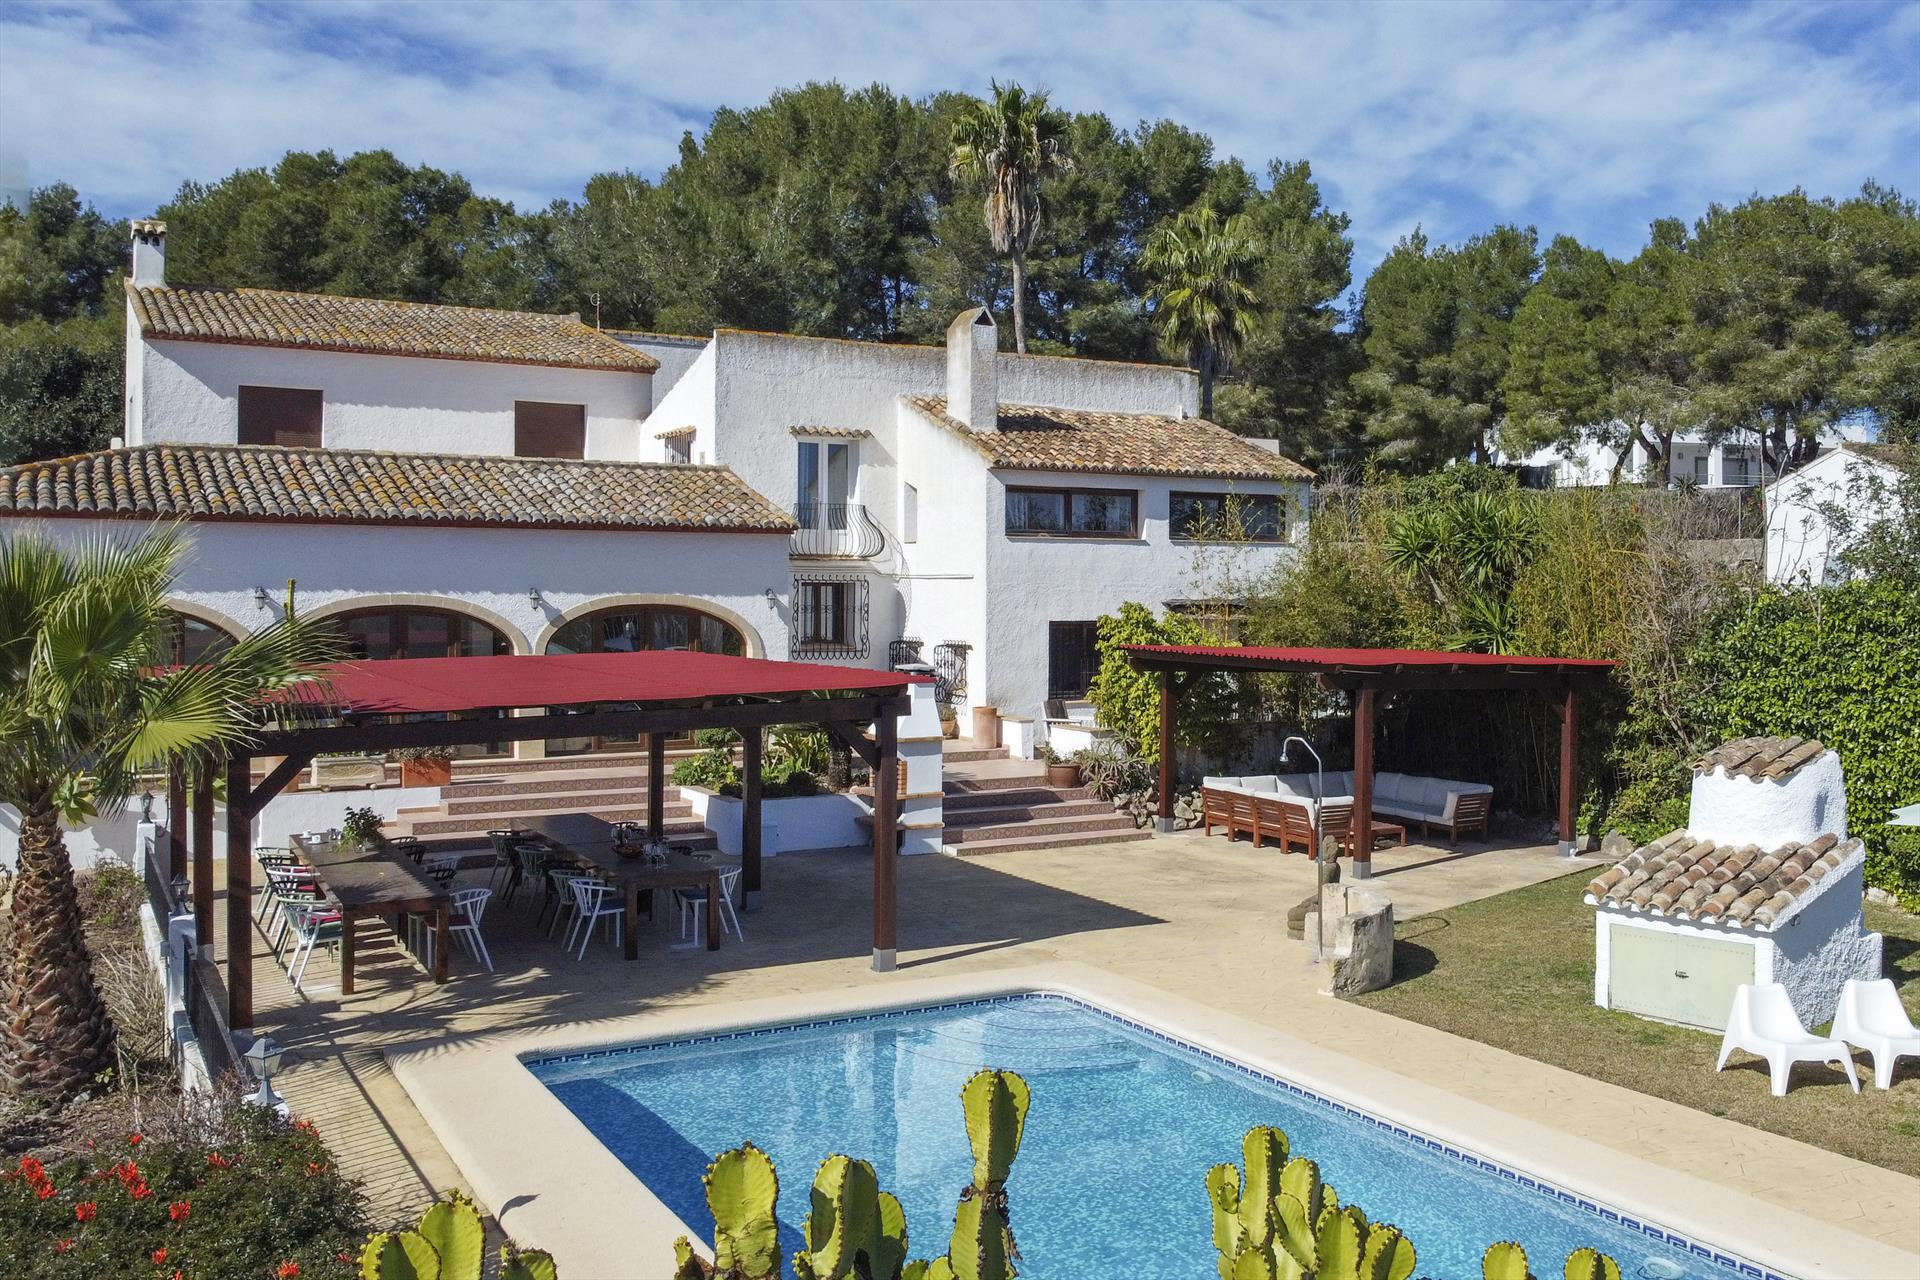 Casa Rosalia 12 pax, Large and classic villa in Javea, on the Costa Blanca, Spain  with private pool for 12 persons.....